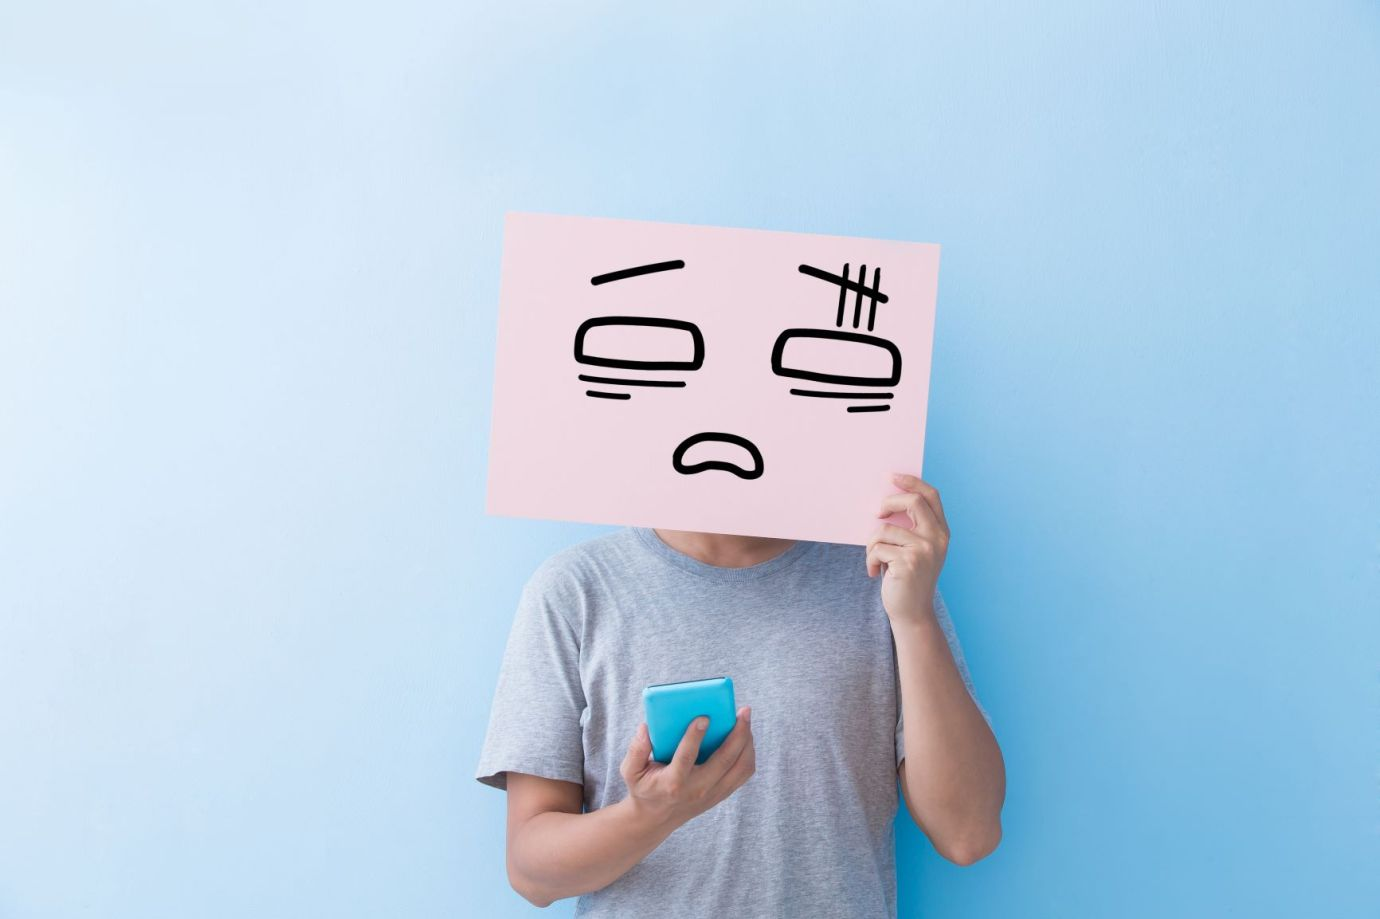 A guy holding up a poster in front of their face with a sad emoticon on it, while holding their phone.